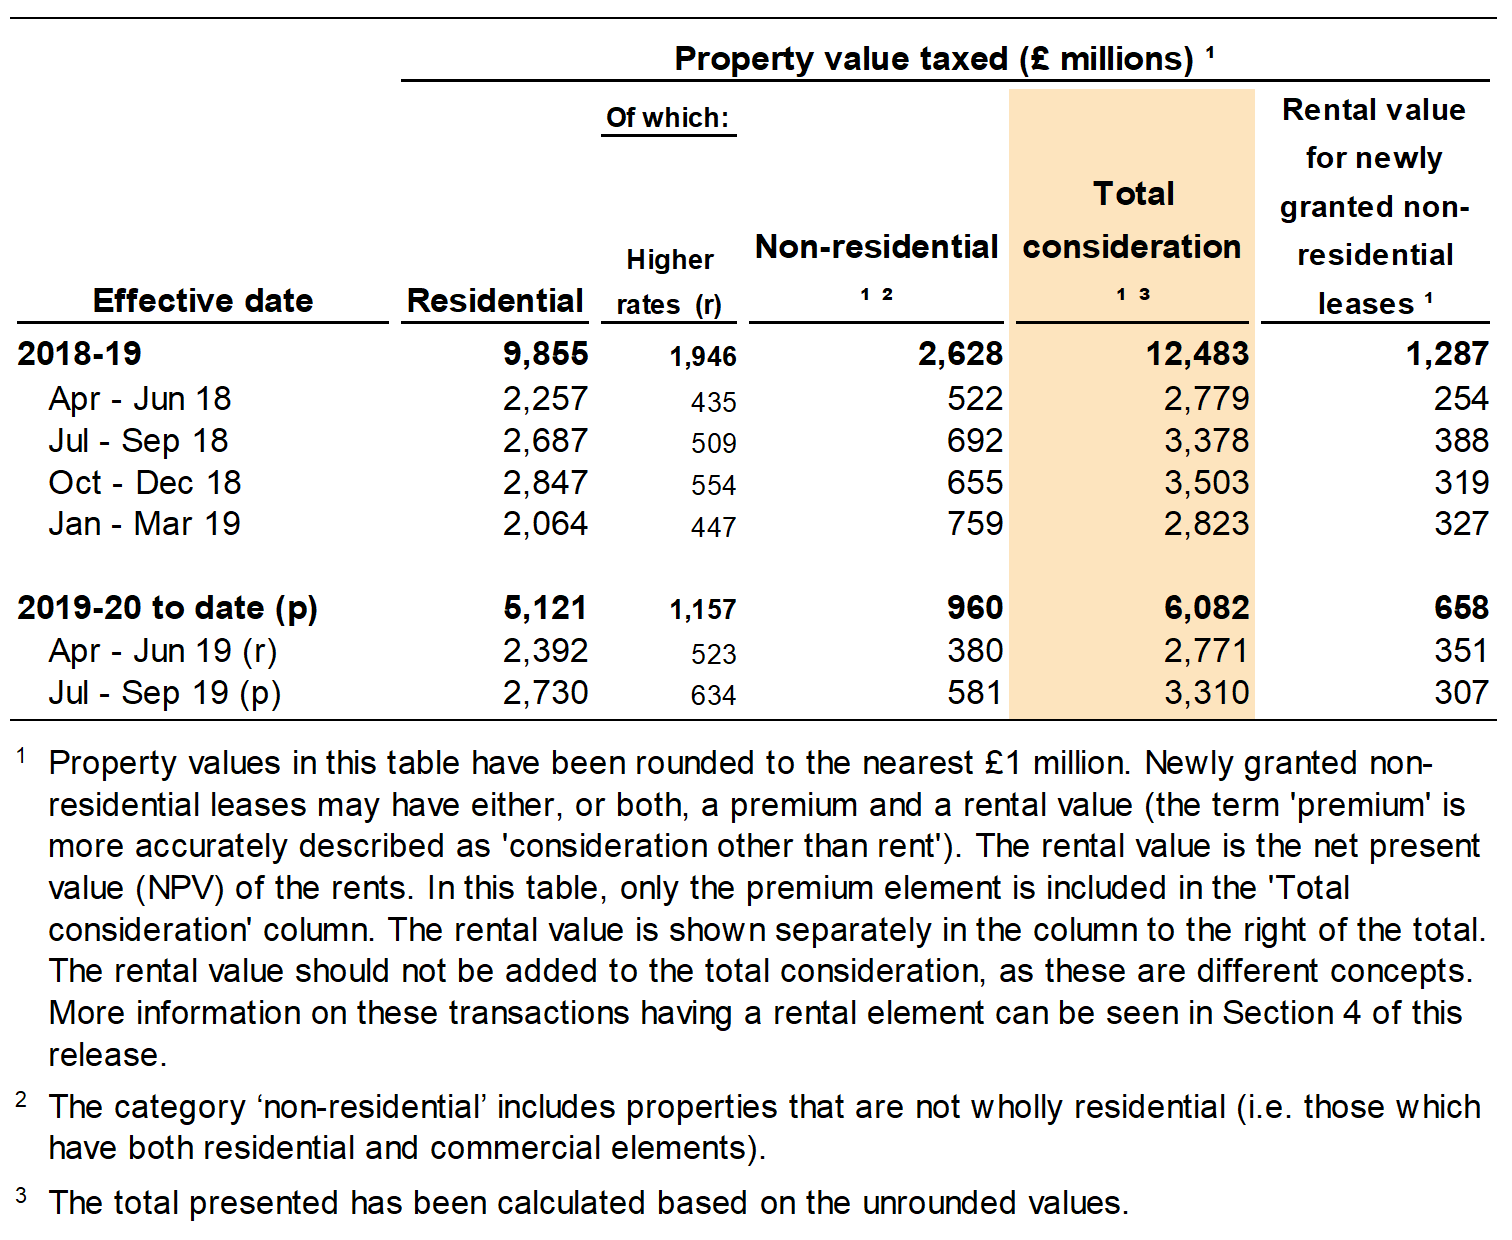 Figure 2.3 shows the value of properties subject to LTT, by the quarter and year in which the transactions were effective. Figure 2.3 also shows a breakdown for residential and non-residential transactions, and separate figures for the rental value of newly granted non-residential leases.